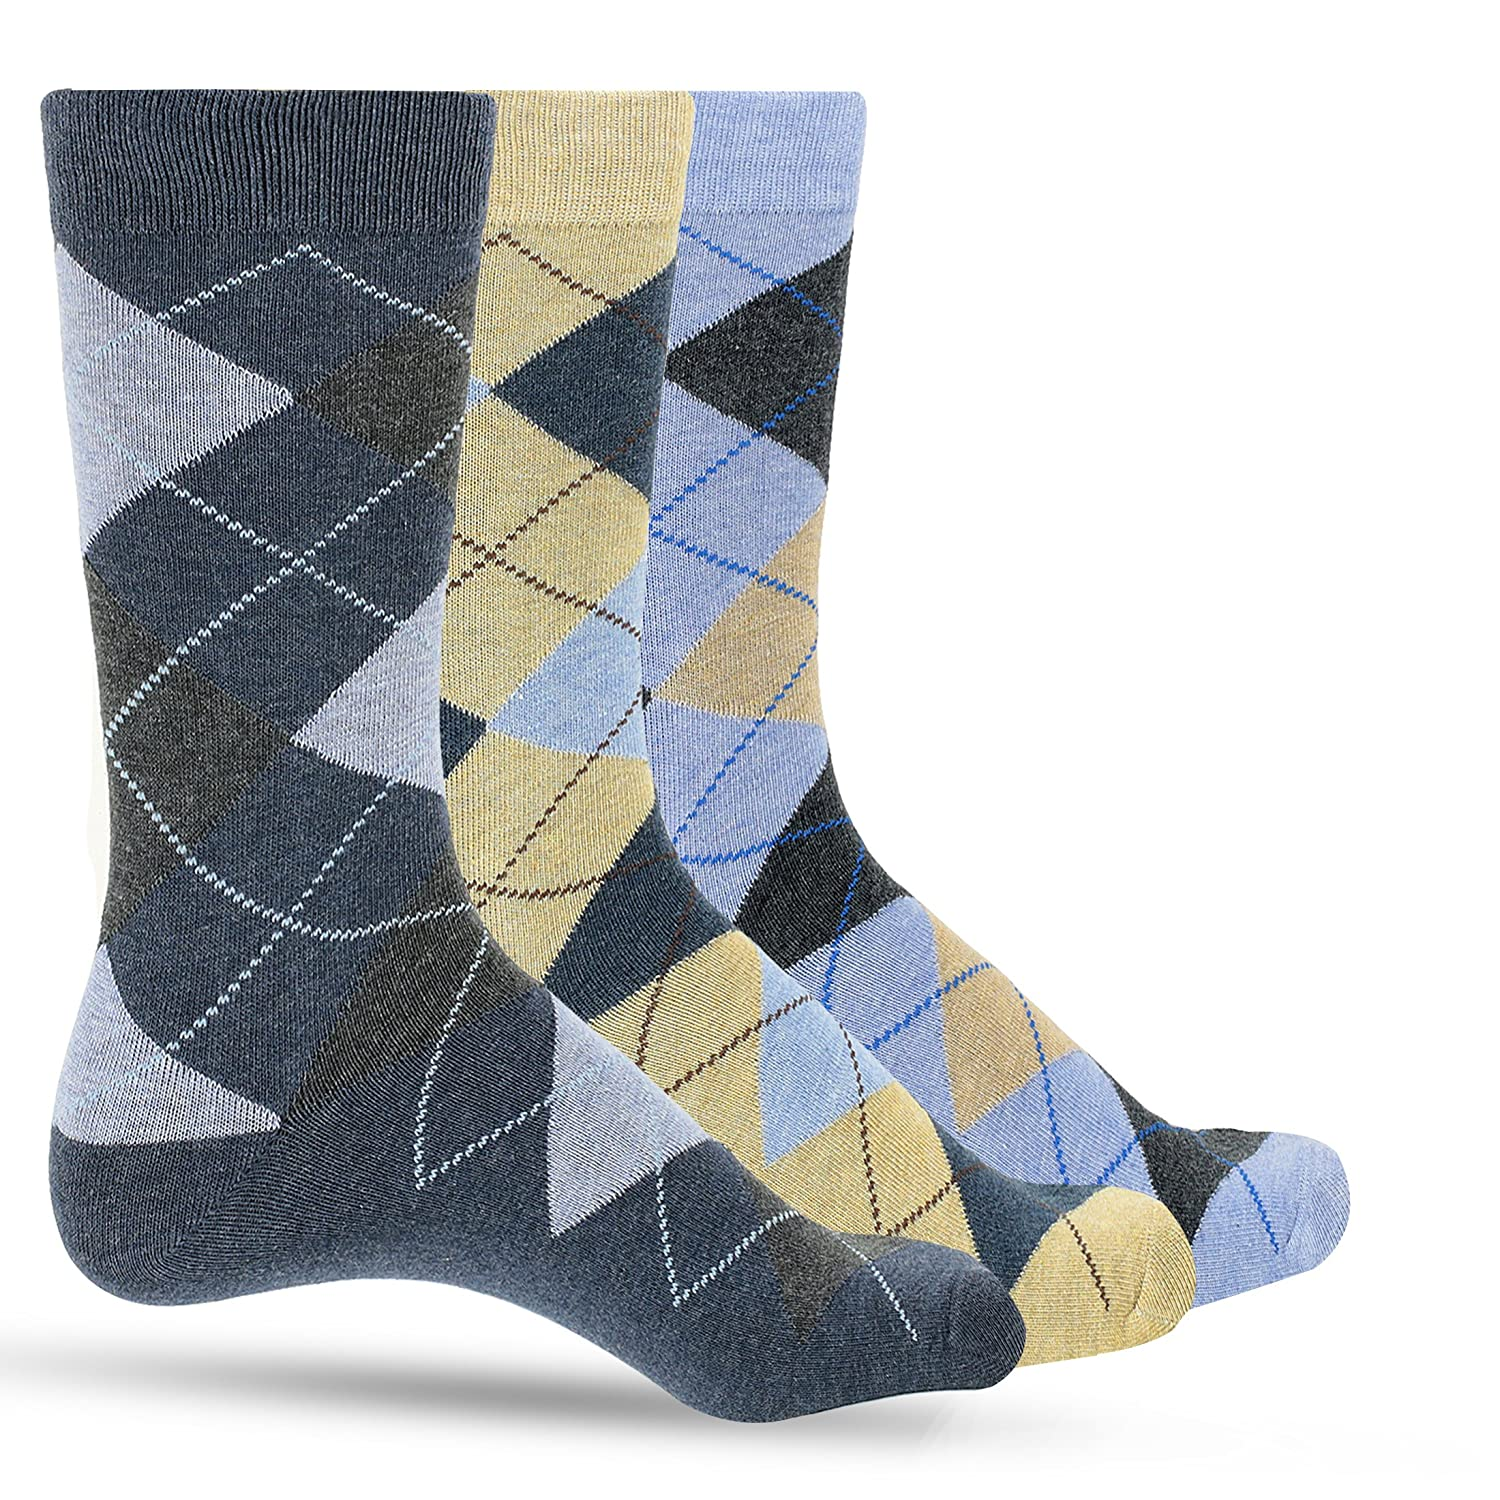 3 Pack Mens Dress Socks Premium Cotton Argyle Men's Dress Socks For Men – Colorful Fashion